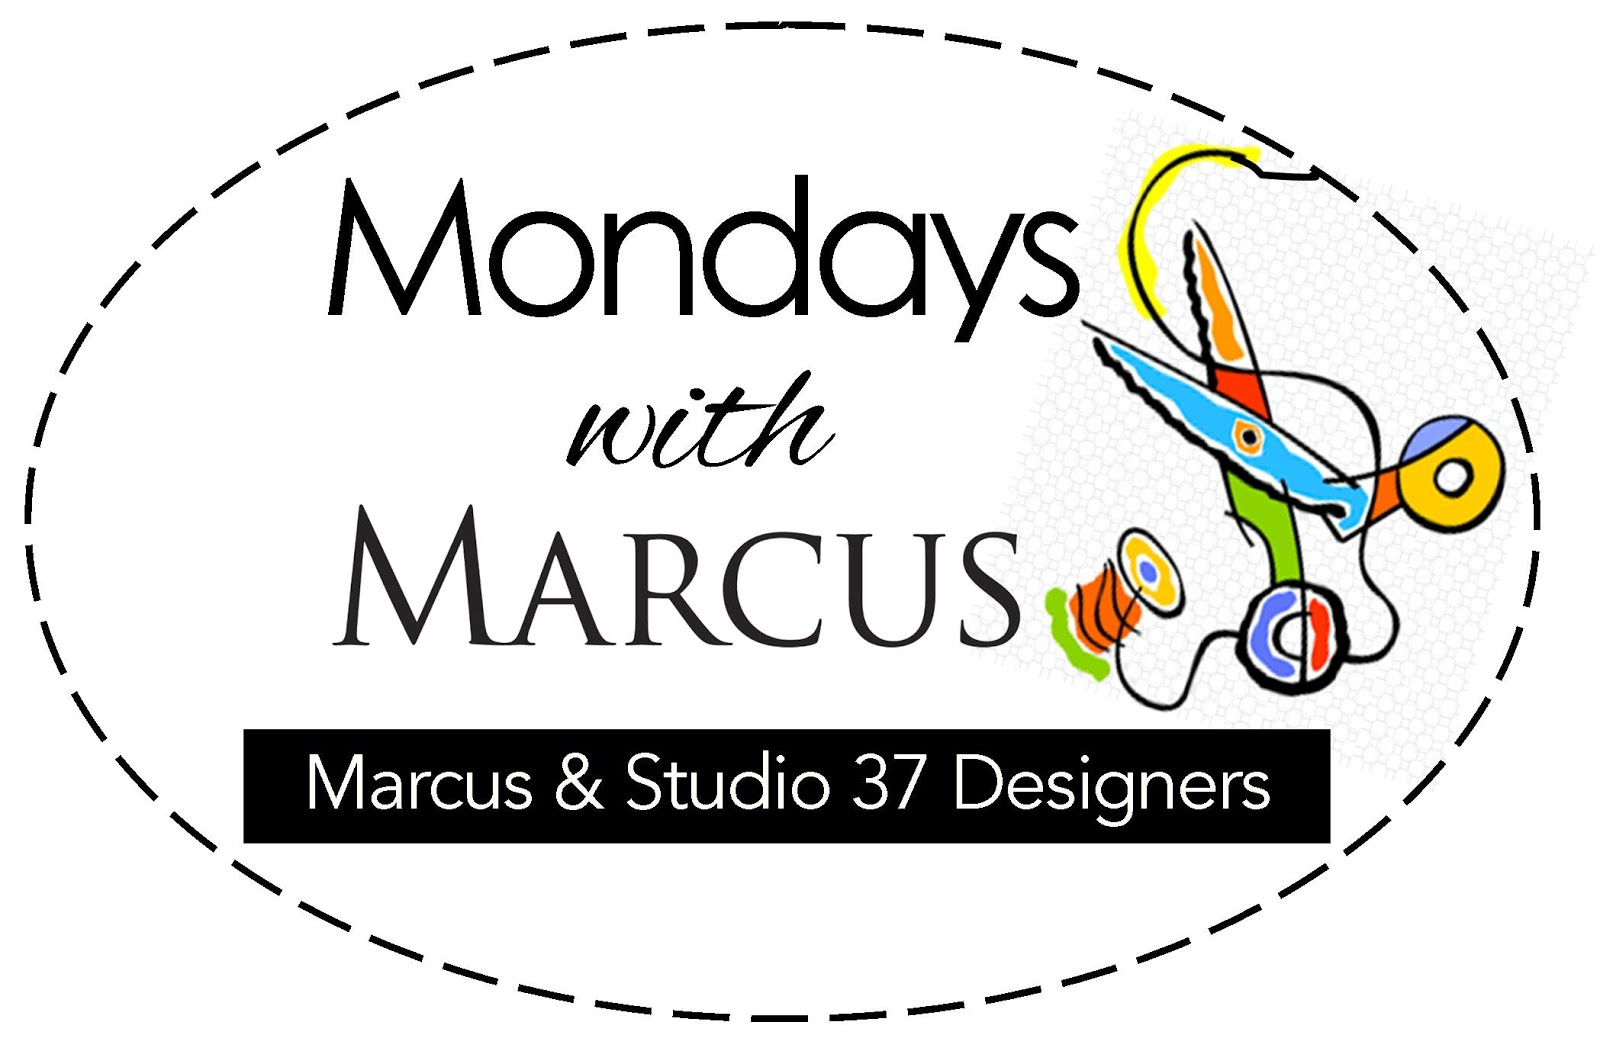 Monday's With Marcus